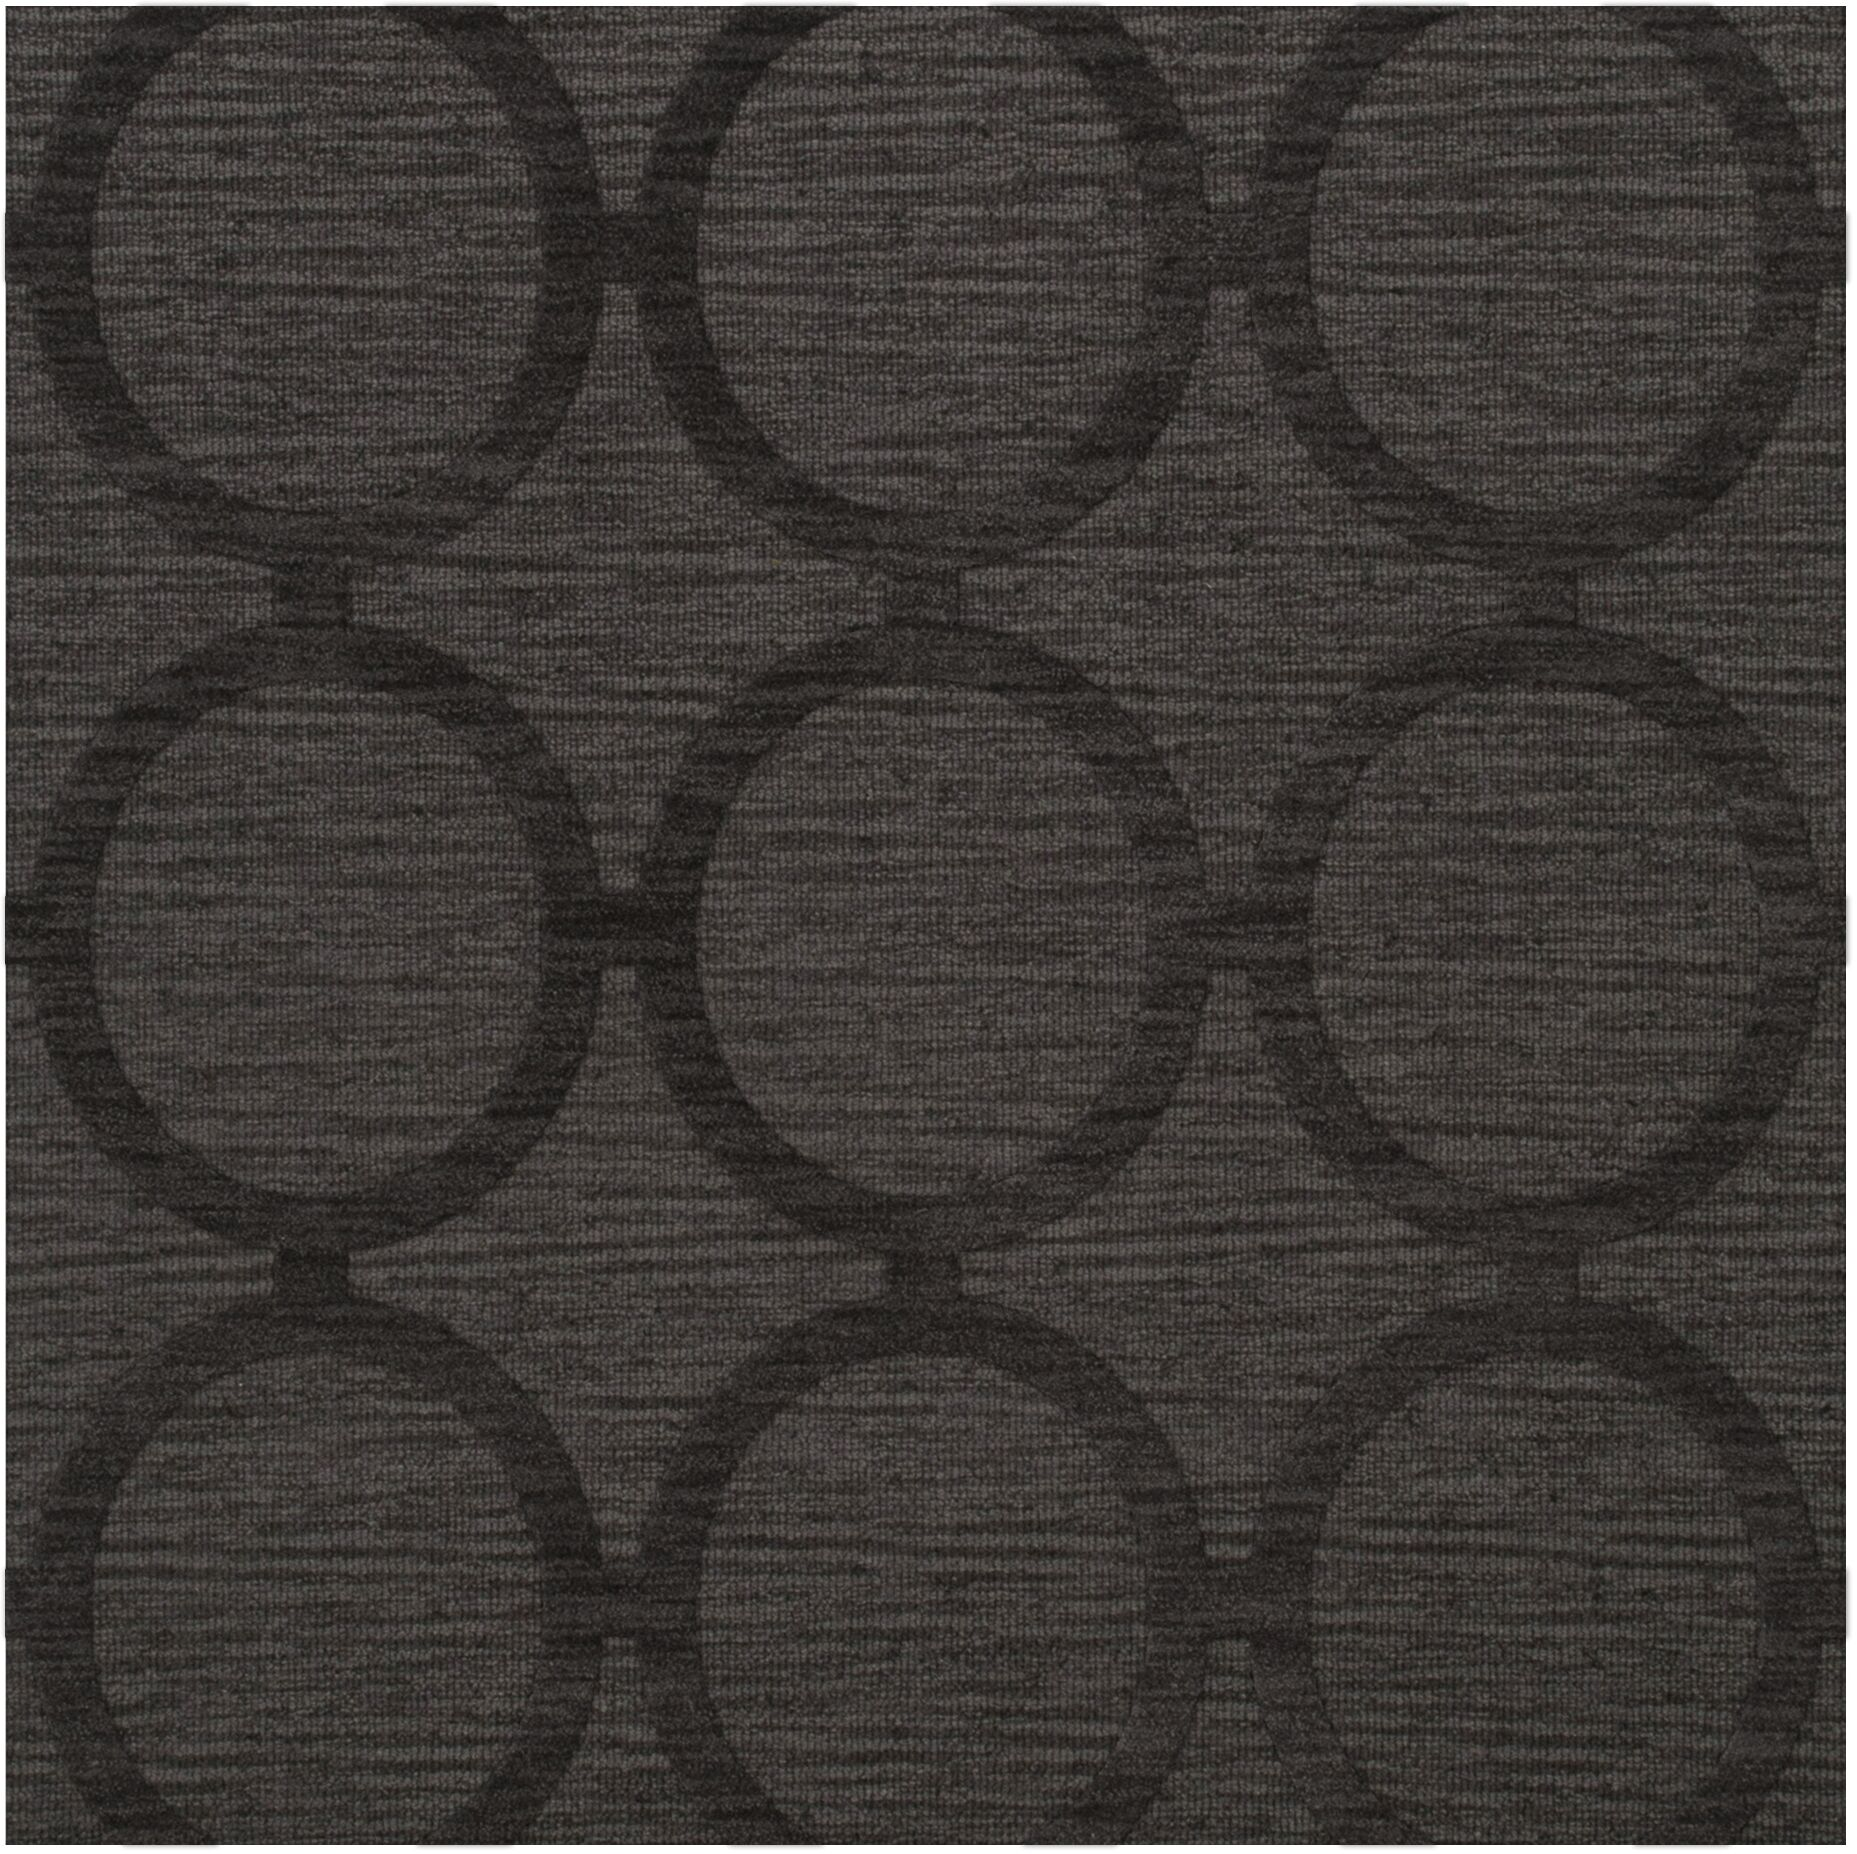 Dover Tufted Wool Ash Area Rug Rug Size: Square 6'